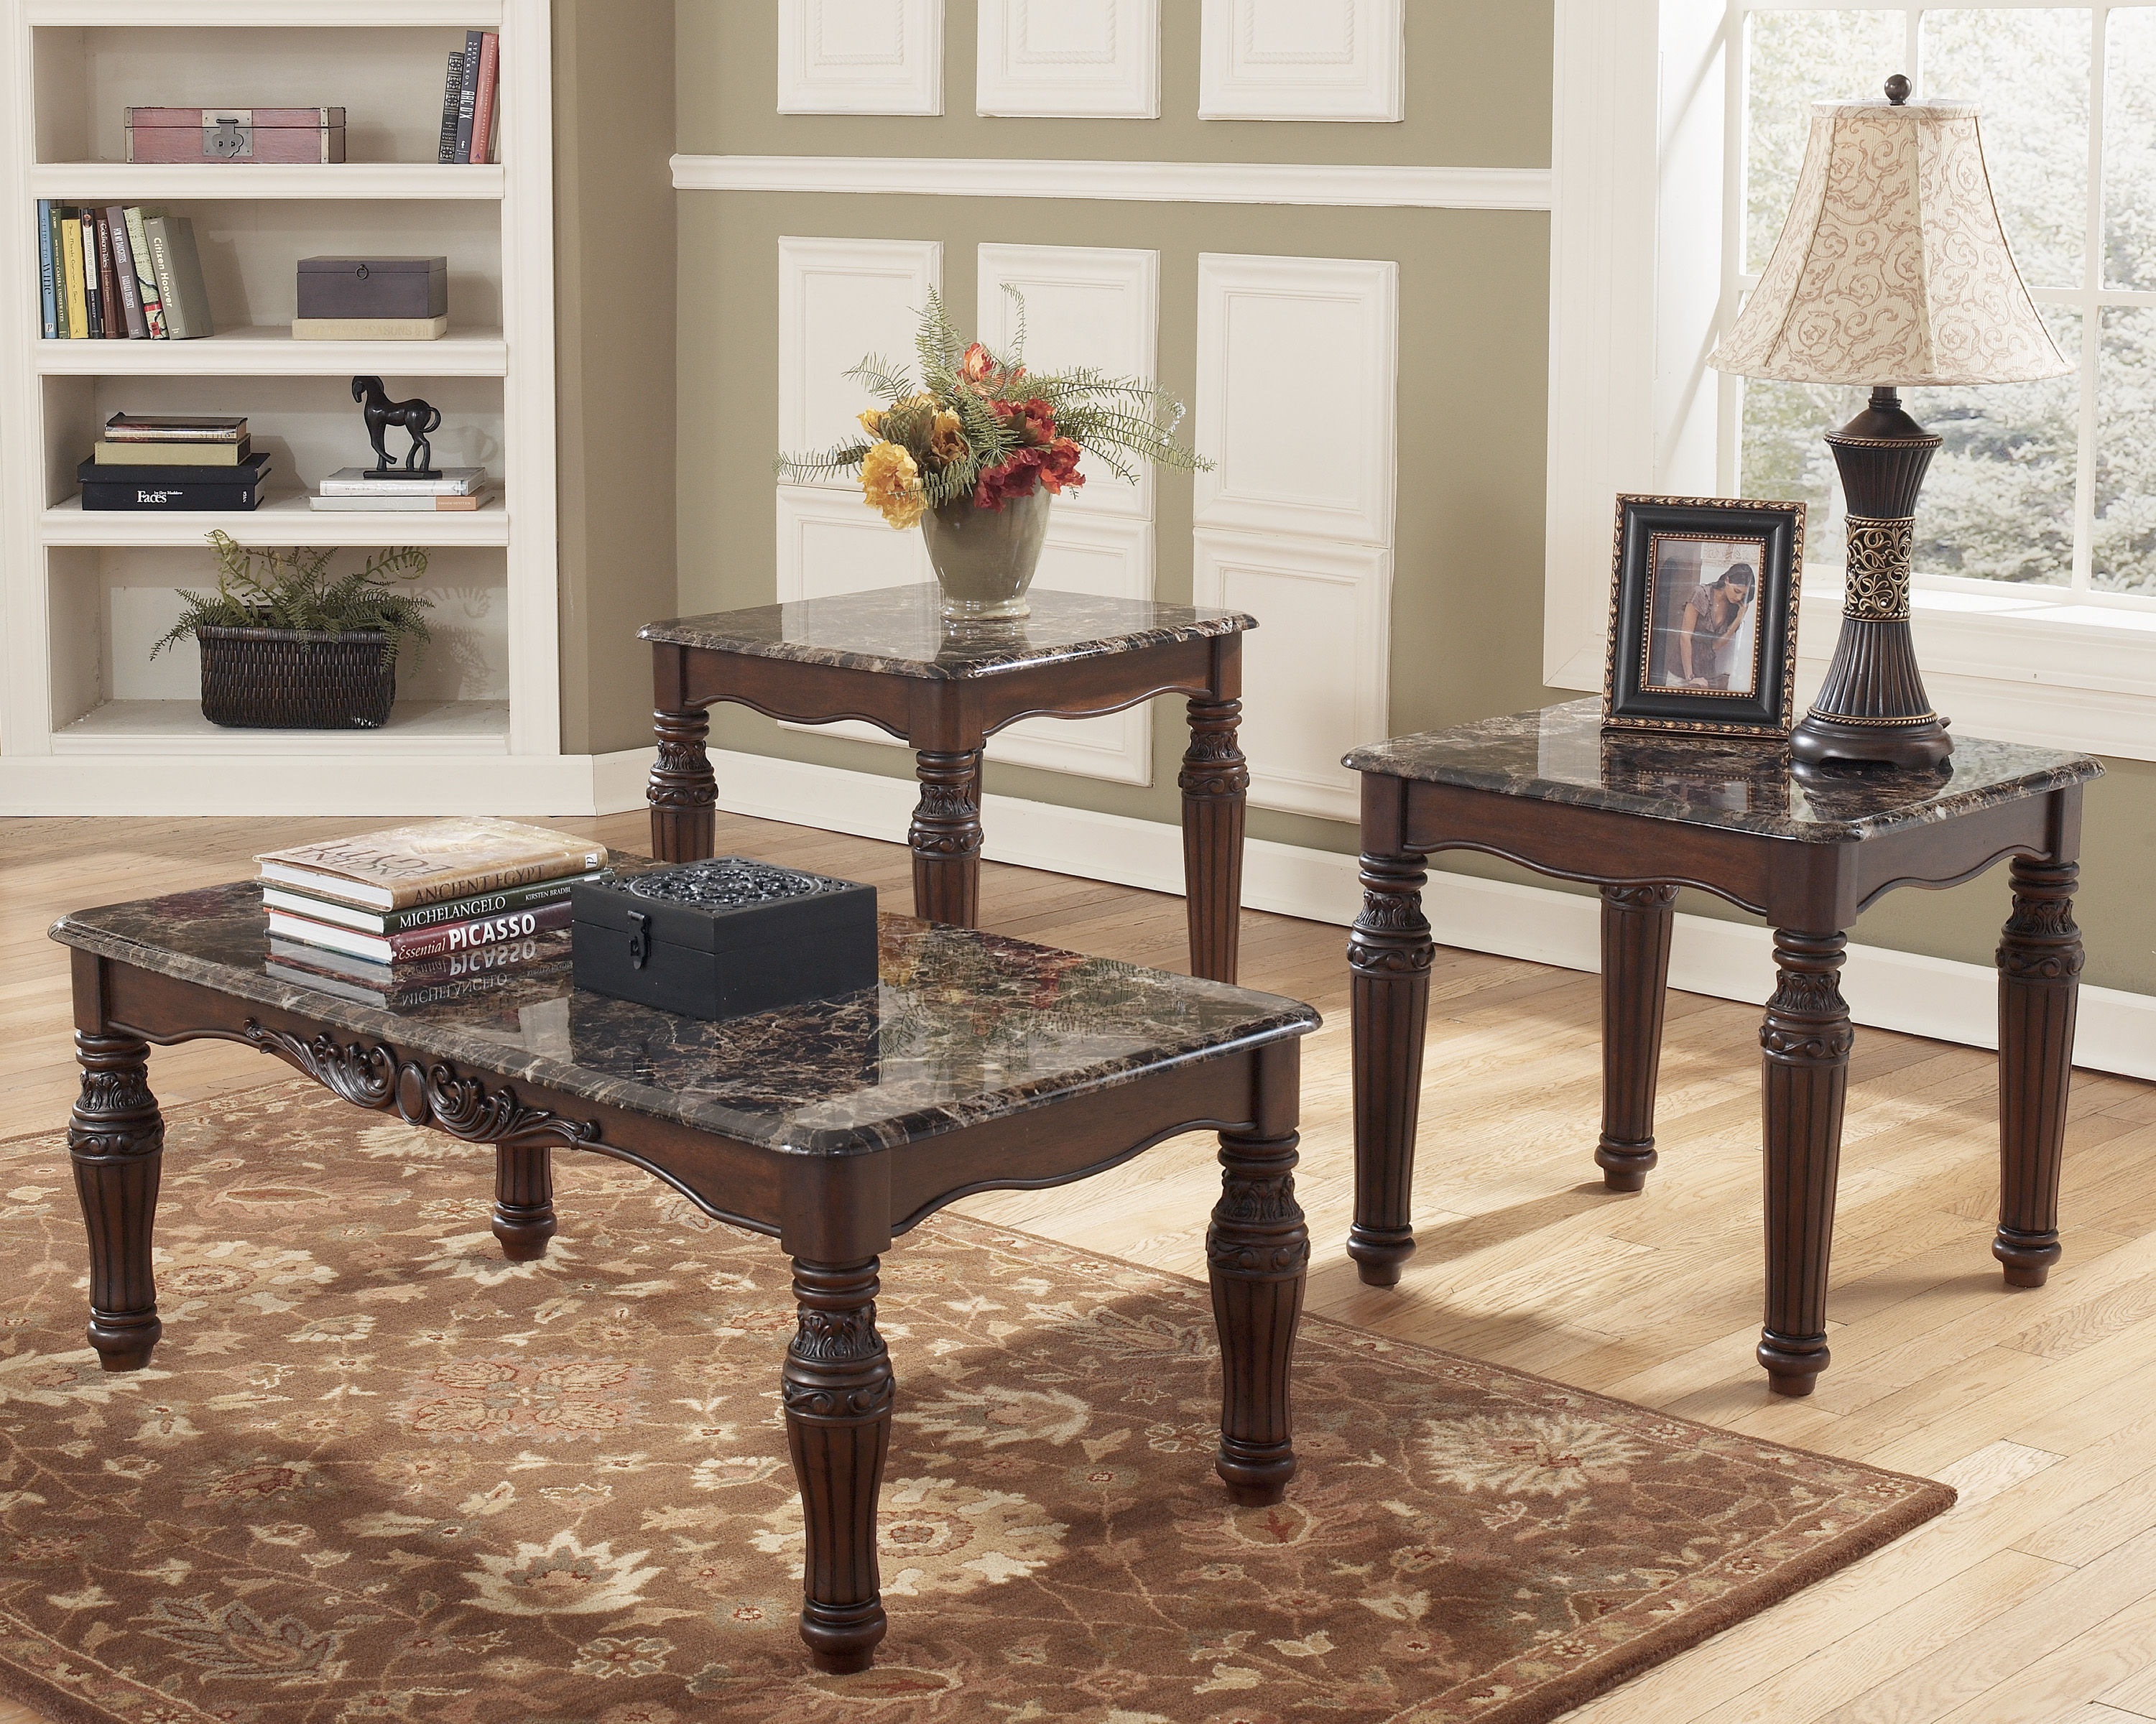 ashley furniture north shore rectangle coffee table set the marble top end tables click enlarge vintage round metal side high glass dining medium rustic wood pulaski edwardian